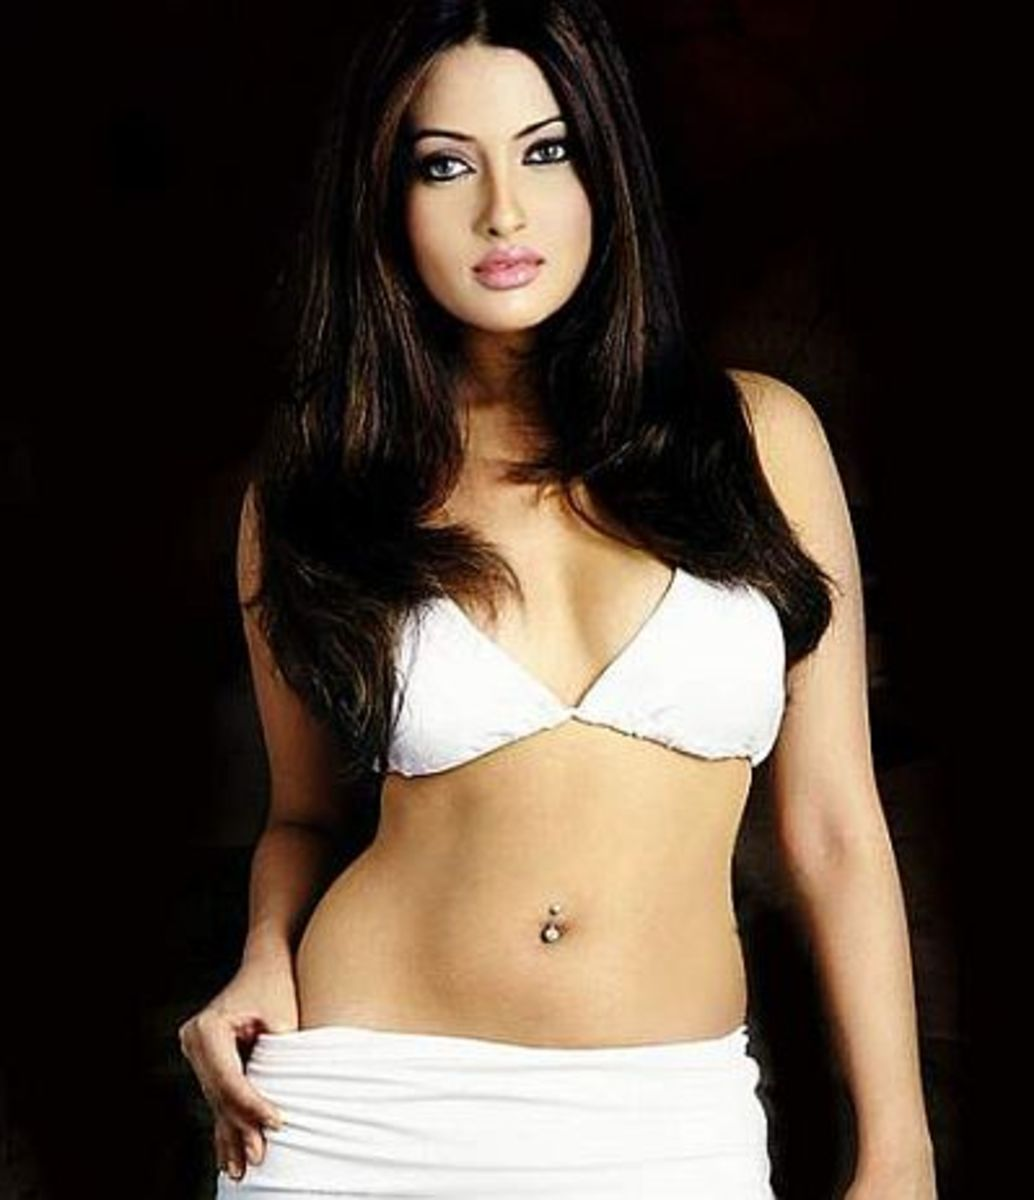 Image search result for Bollywood Actress - Rya Sen